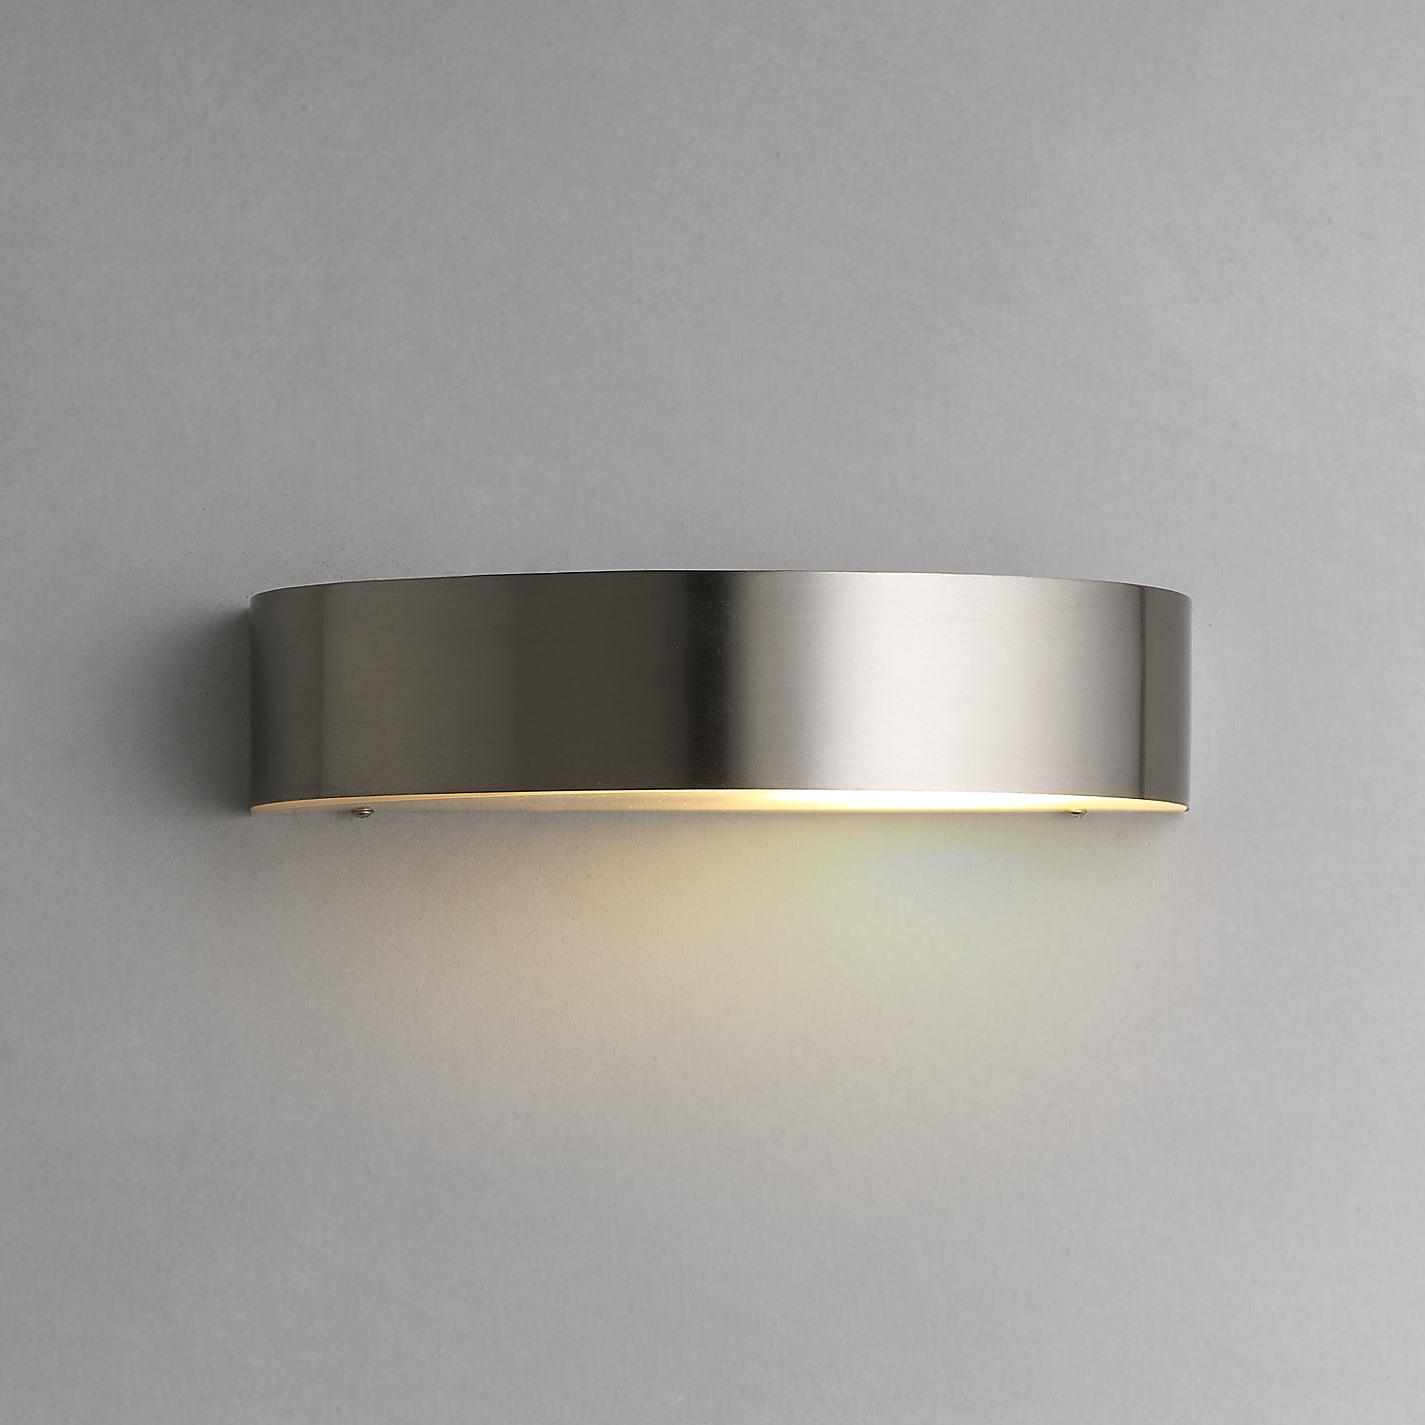 Fancy Outdoor Wall Lights B Q 70 With Additional Ikea Wall Lights Uk Within Most Recently Released Outdoor Wall Lights At Ikea (View 5 of 20)